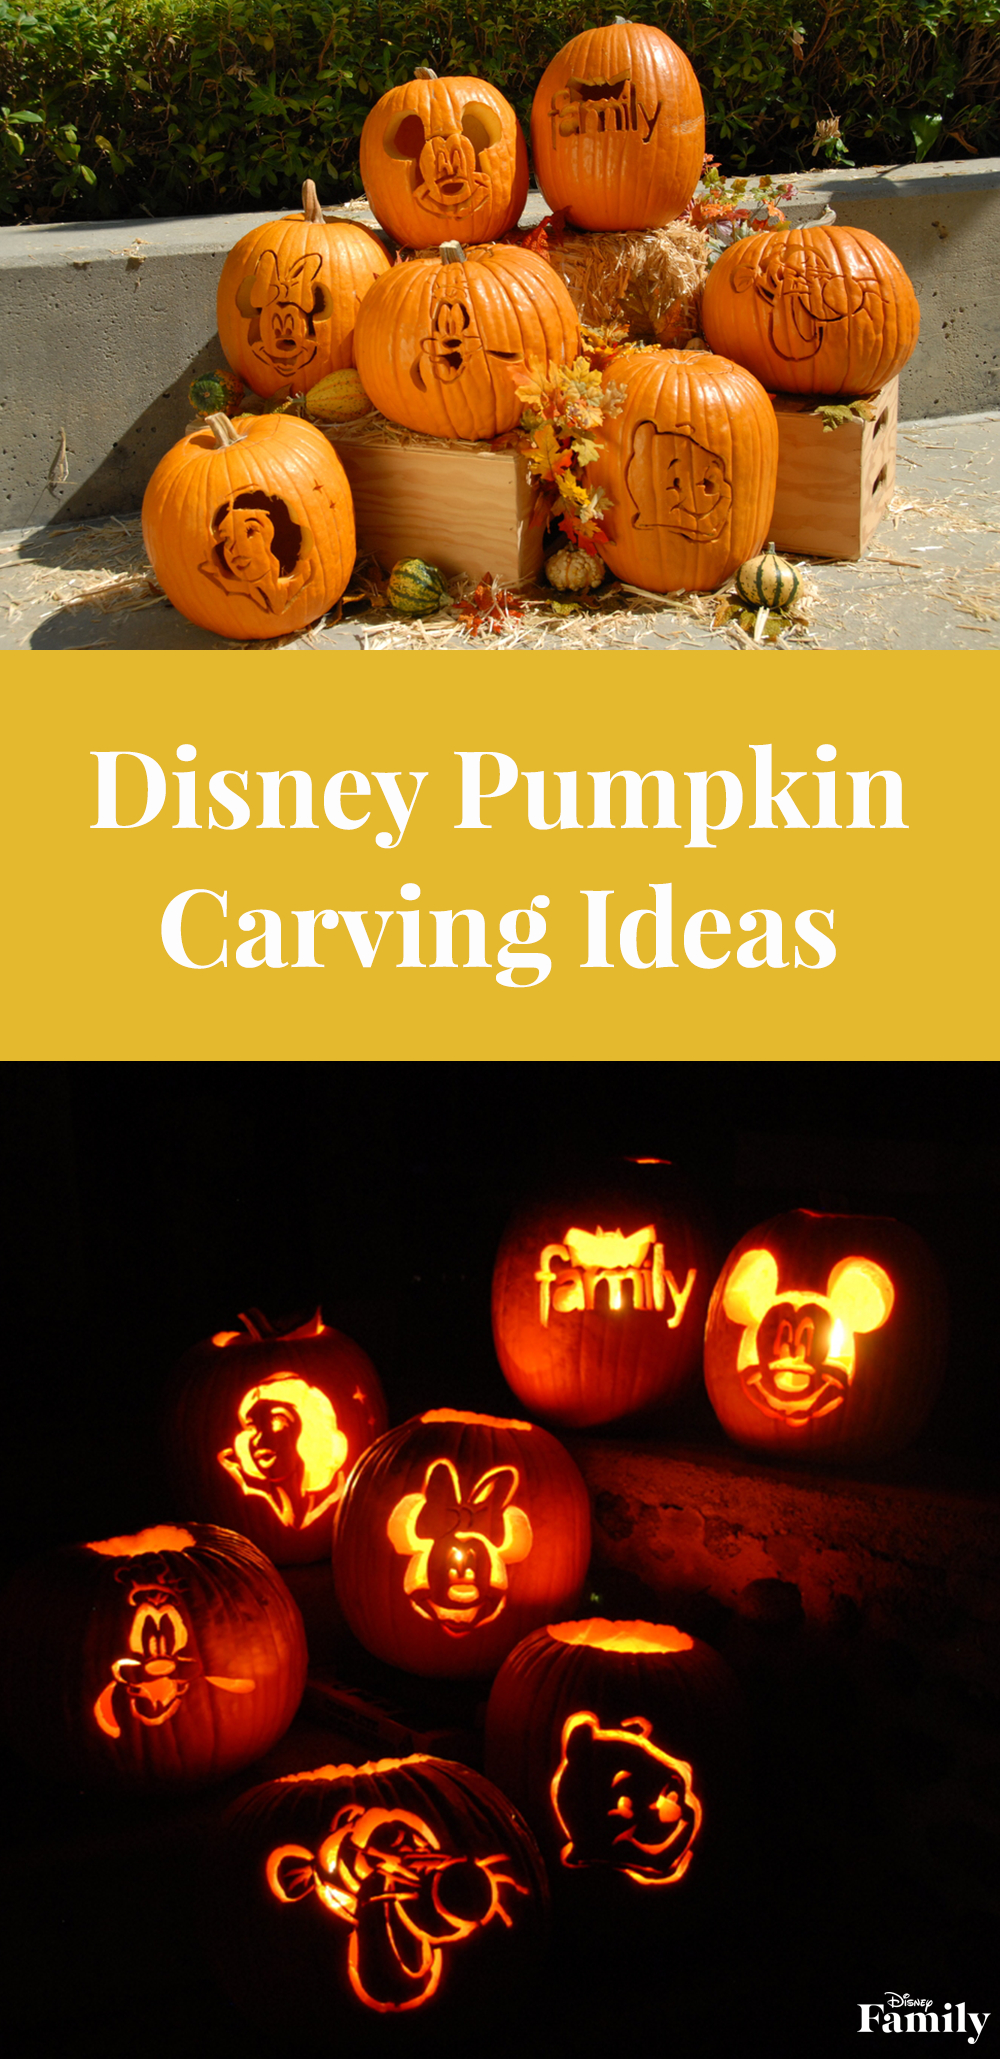 Disney Pumpkin Carving Ideas | Disney Family - Free Online Pumpkin Carving Patterns Printable